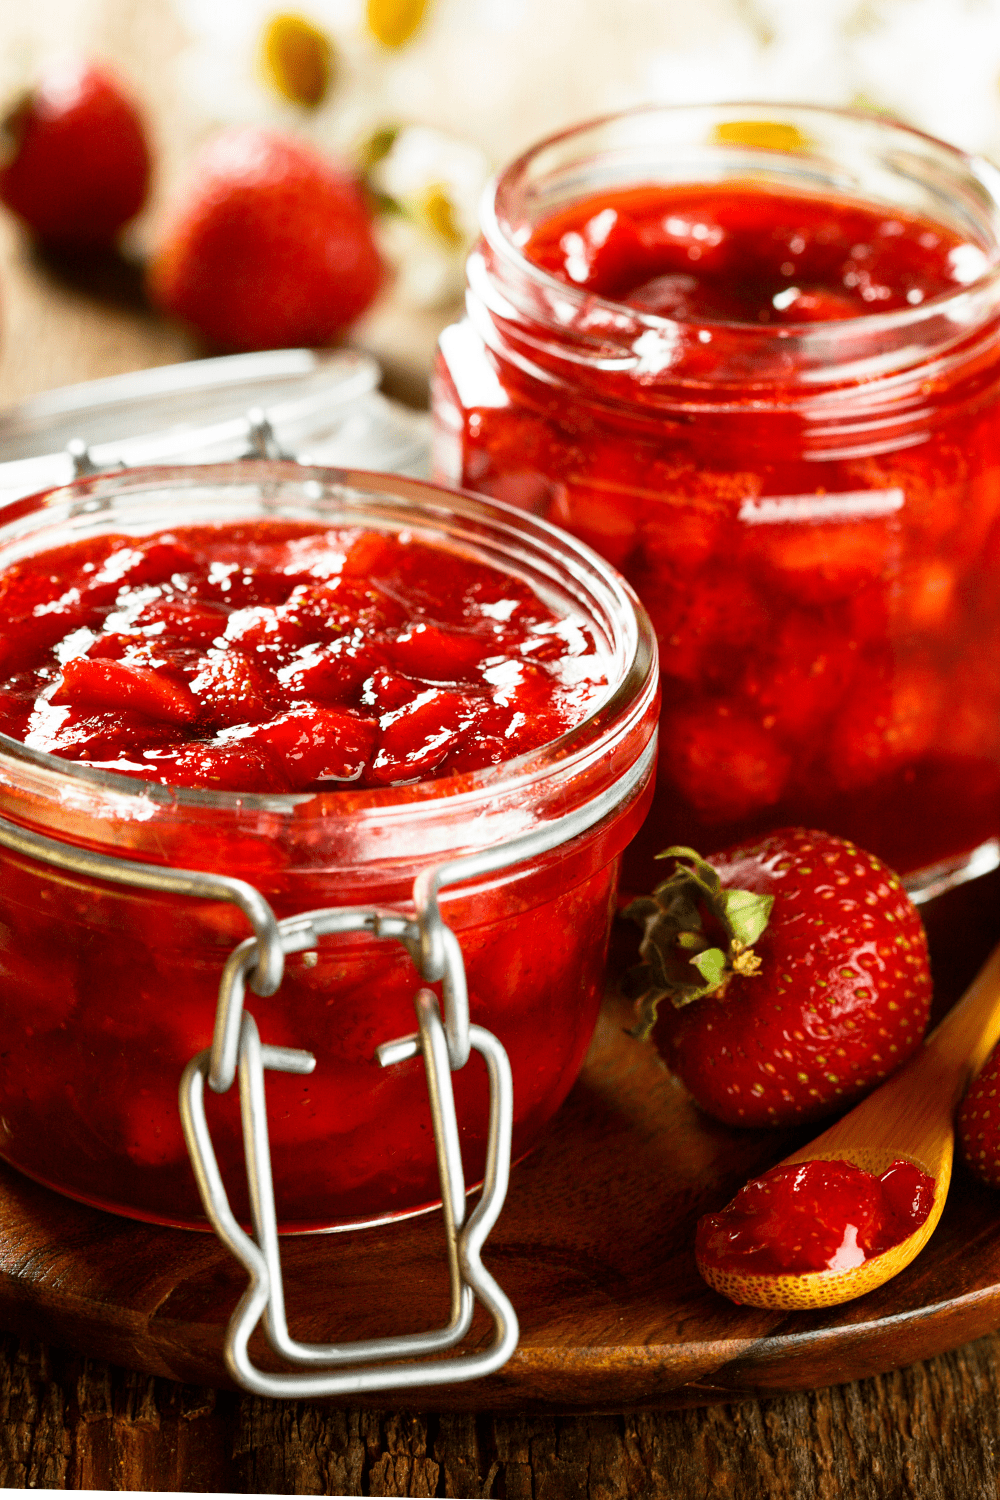 Pandemic Strawberry Jam Recipe